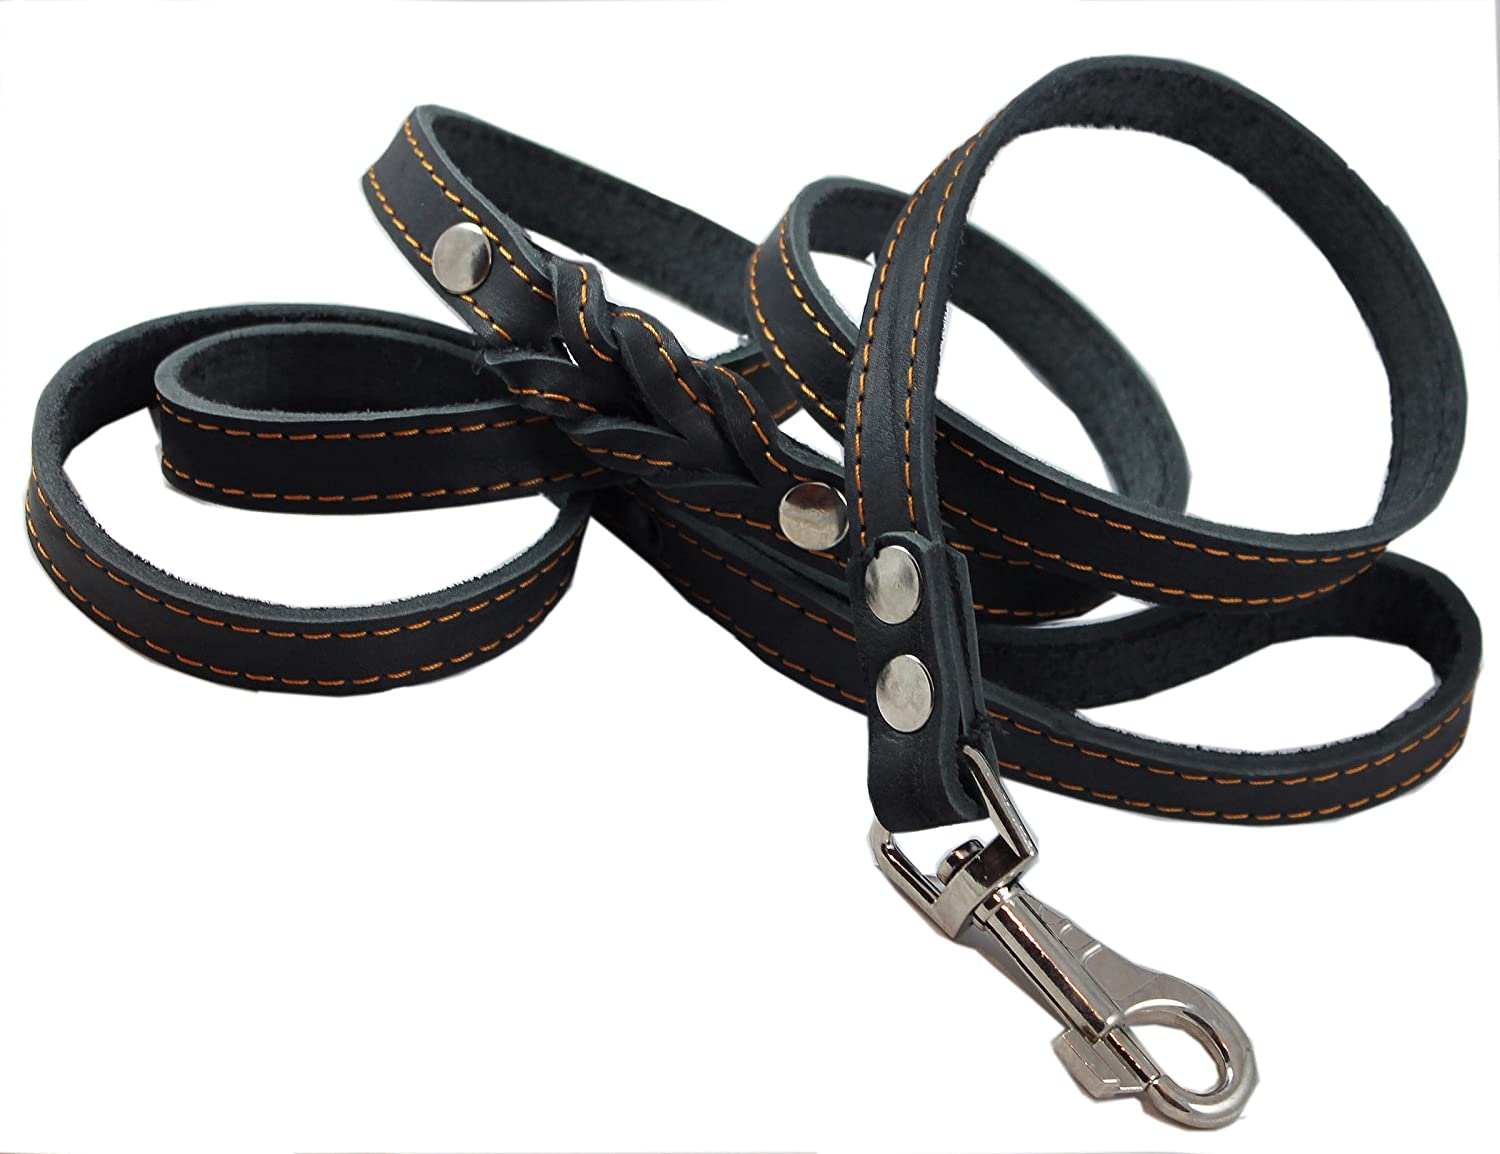 6' Genuine Leather Braided Dog Leash Black 3 4  Wide for Largest Breeds